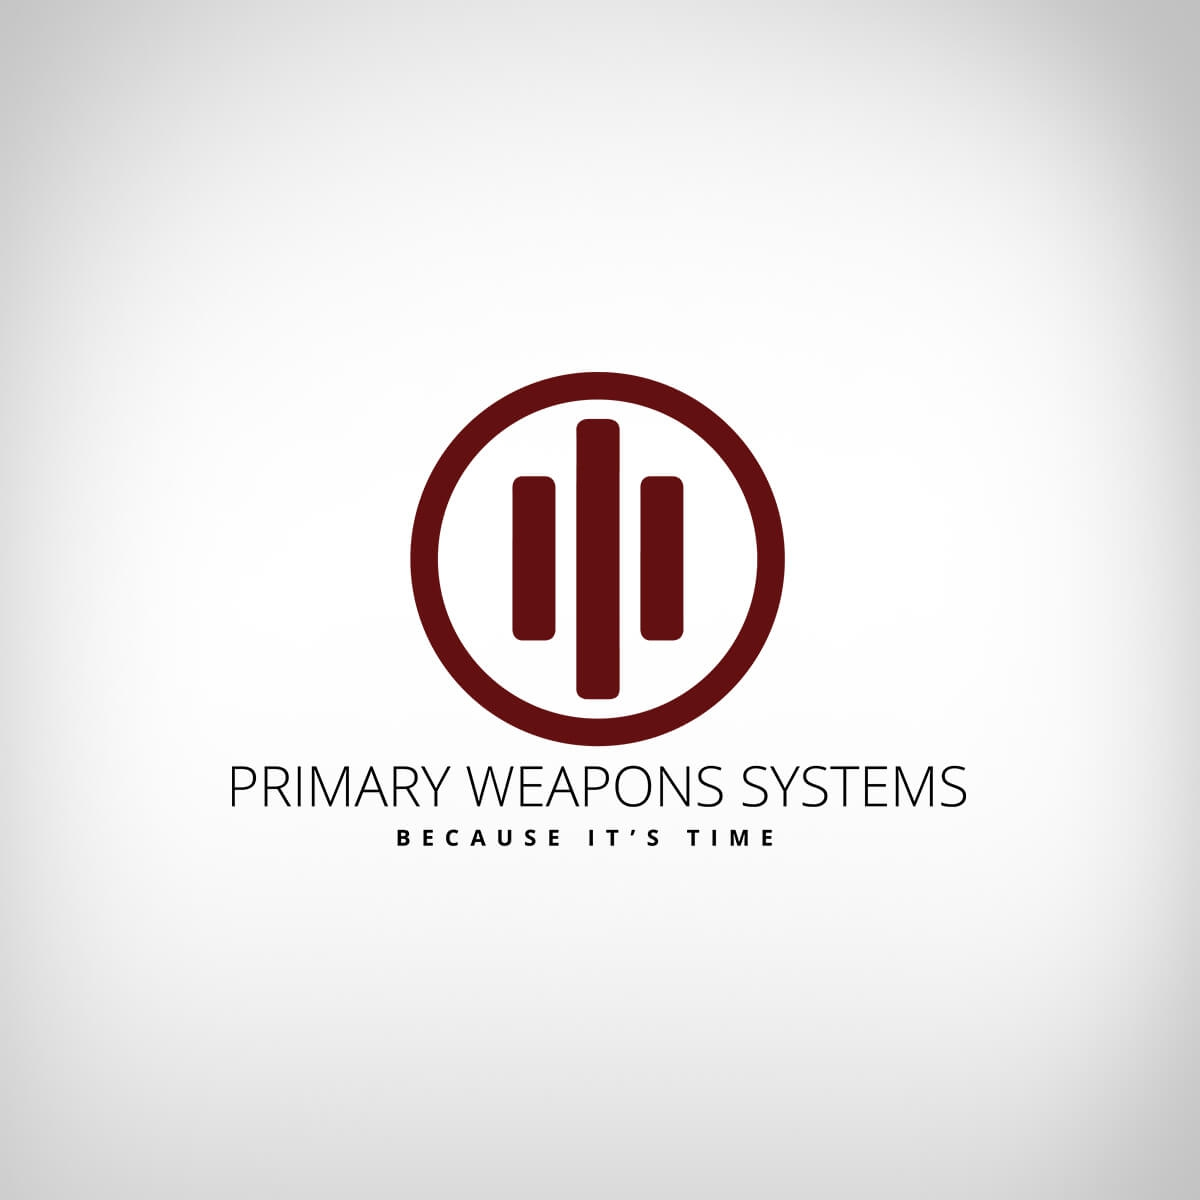 Manufacturer: Primary Weapon Systems | PWS